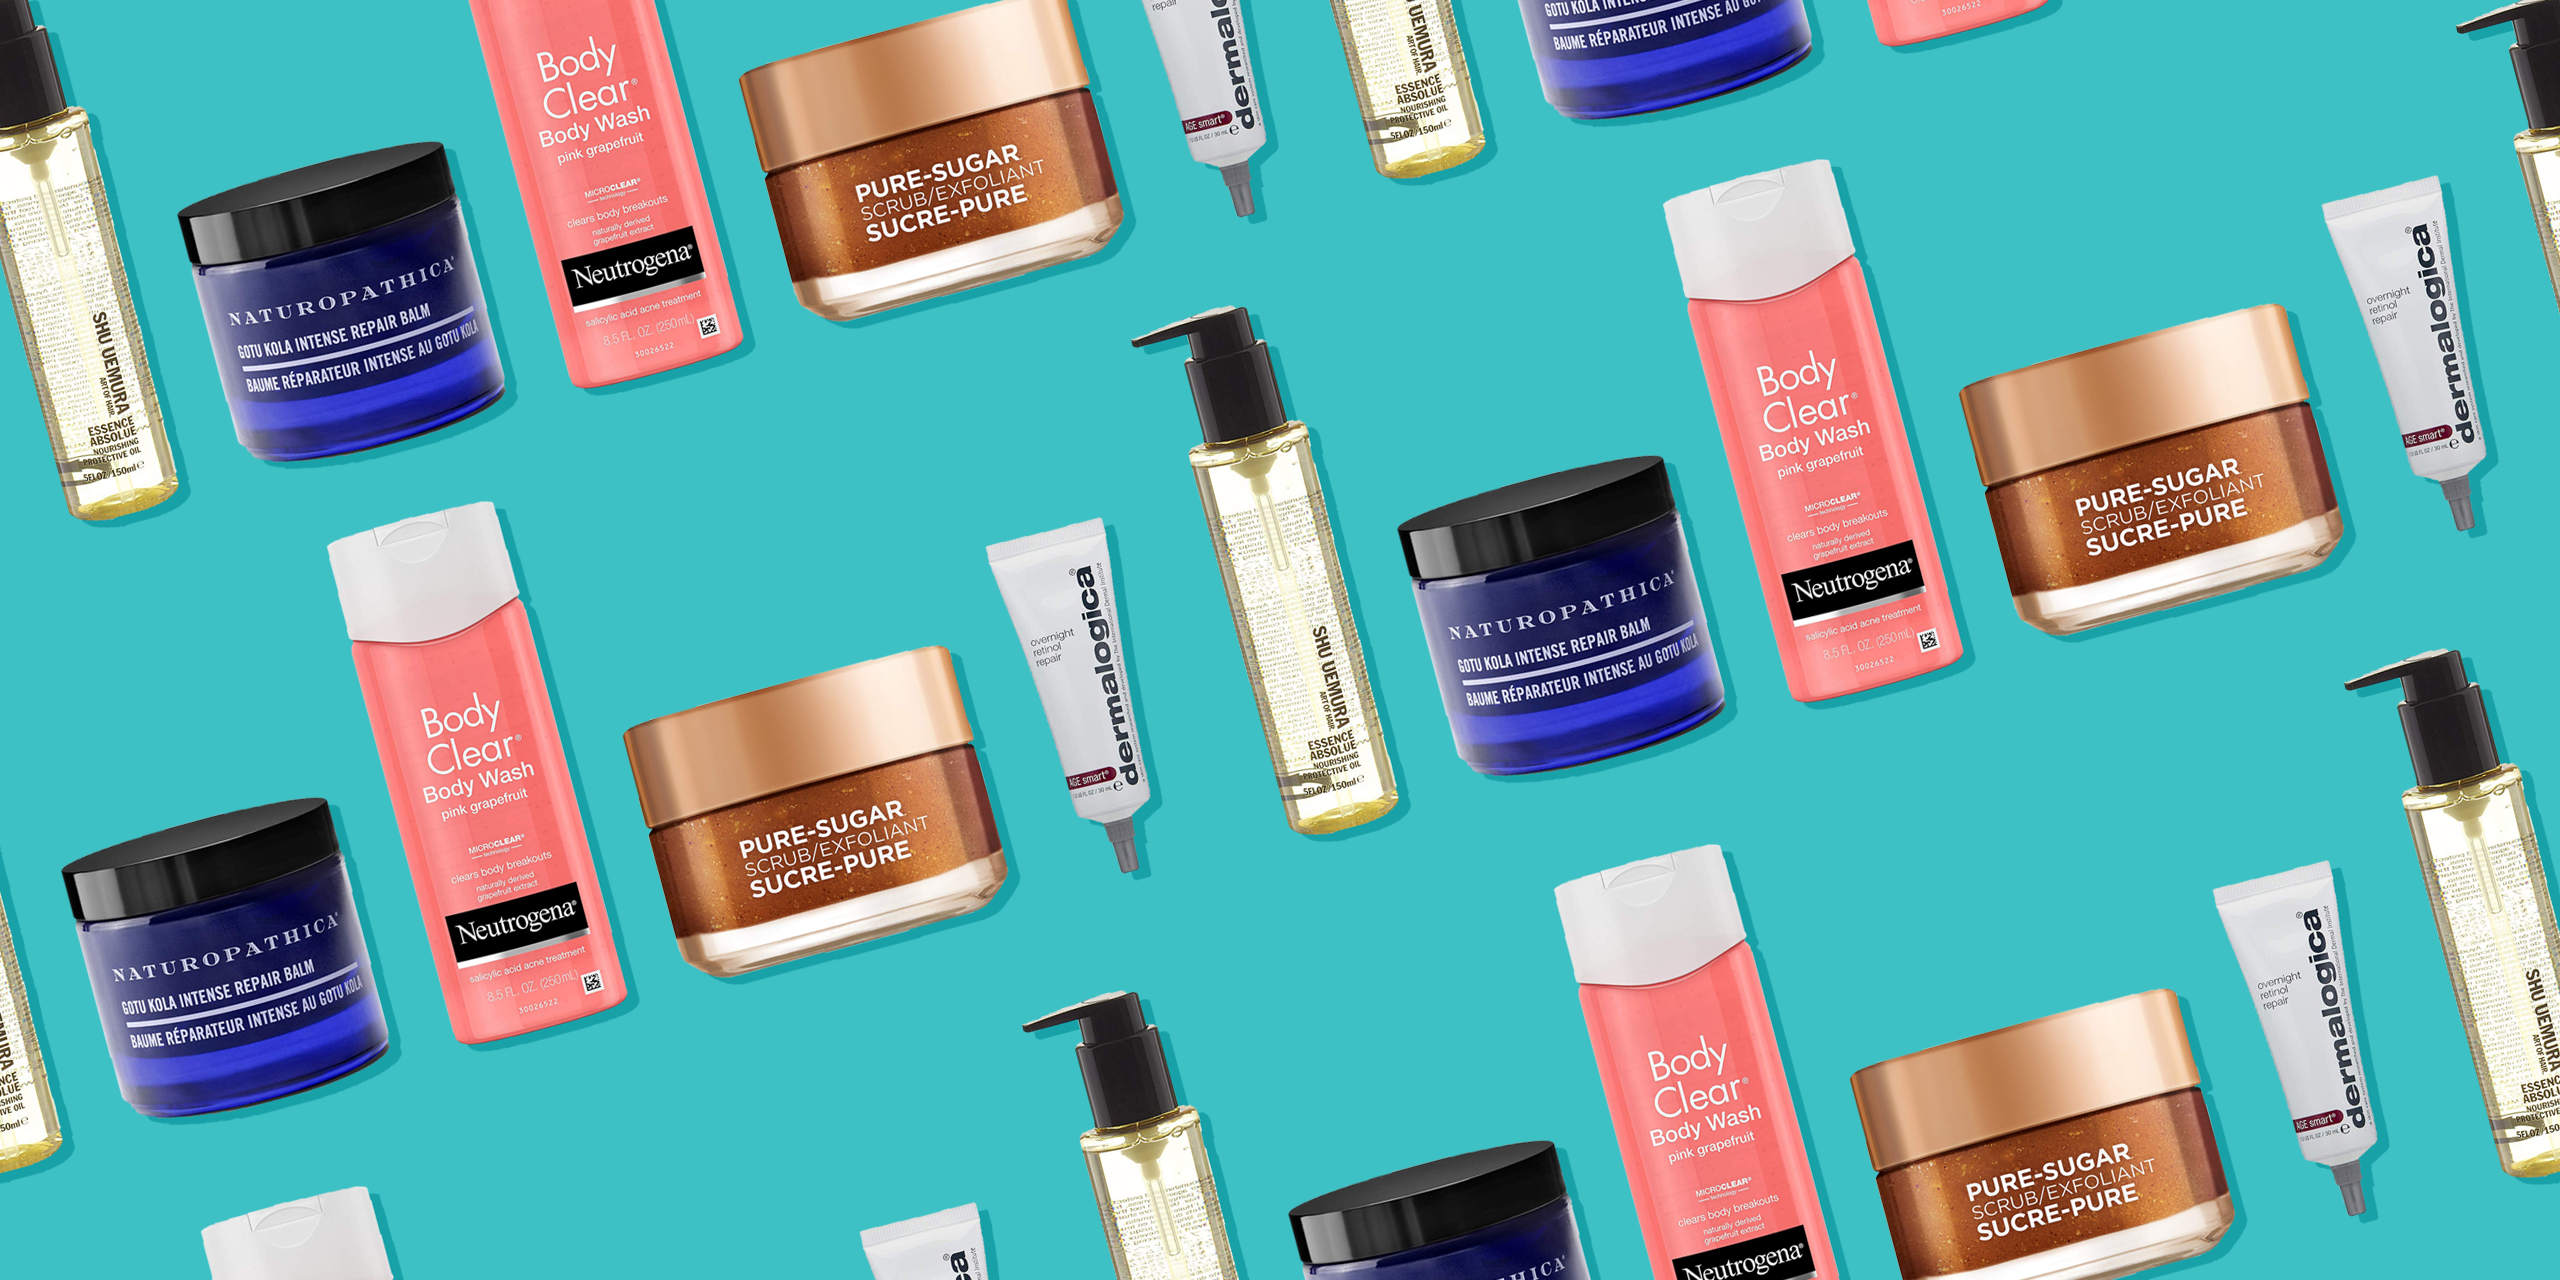 Prevention's 2019 Beauty Awards: Experts Pick the Best Skin and Hair Products